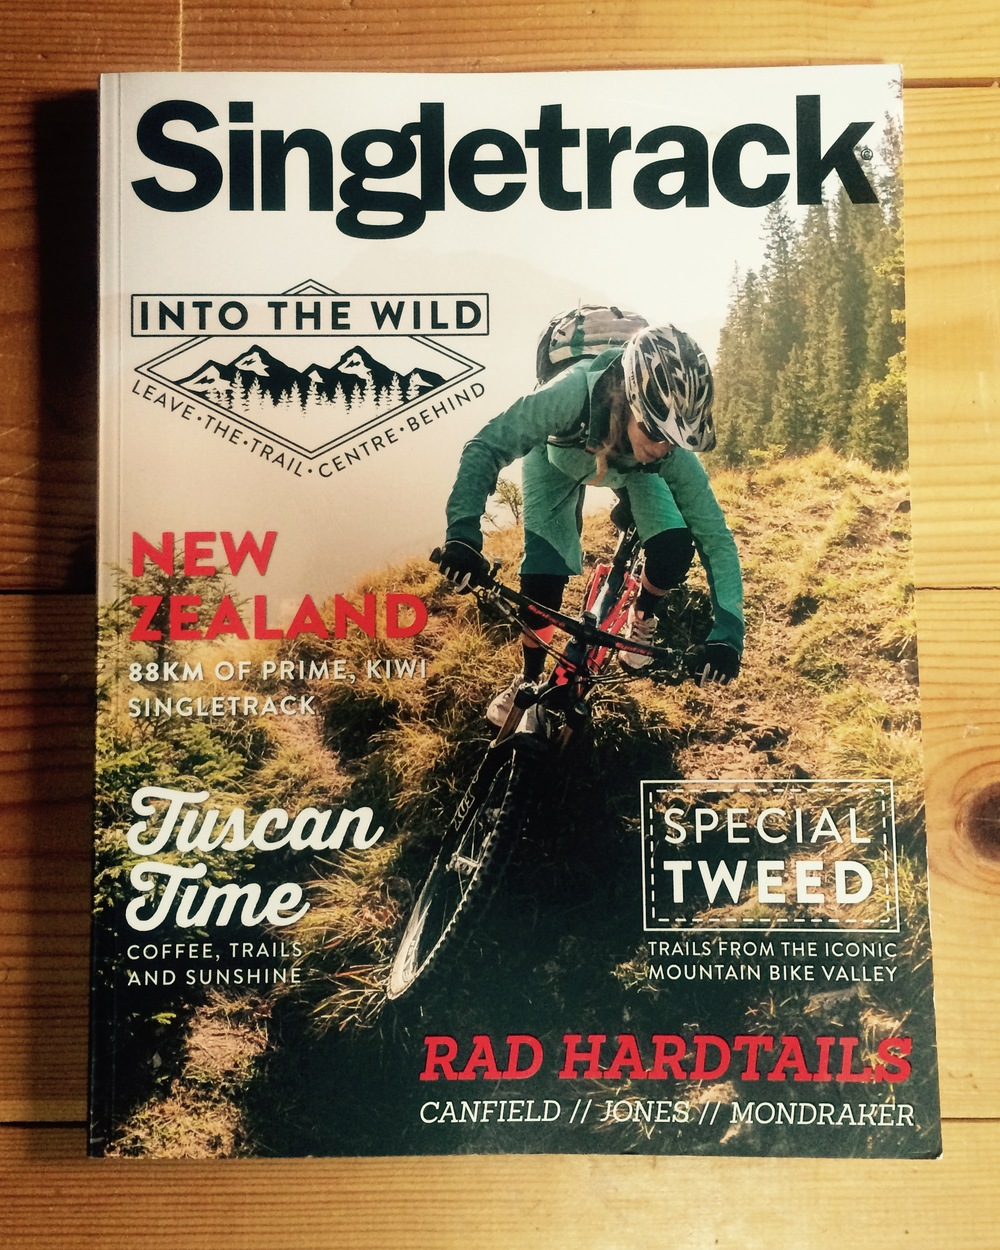 Singletrack Magazine UK 2015 - 11 pg article on The Old Ghost Road, NZ.